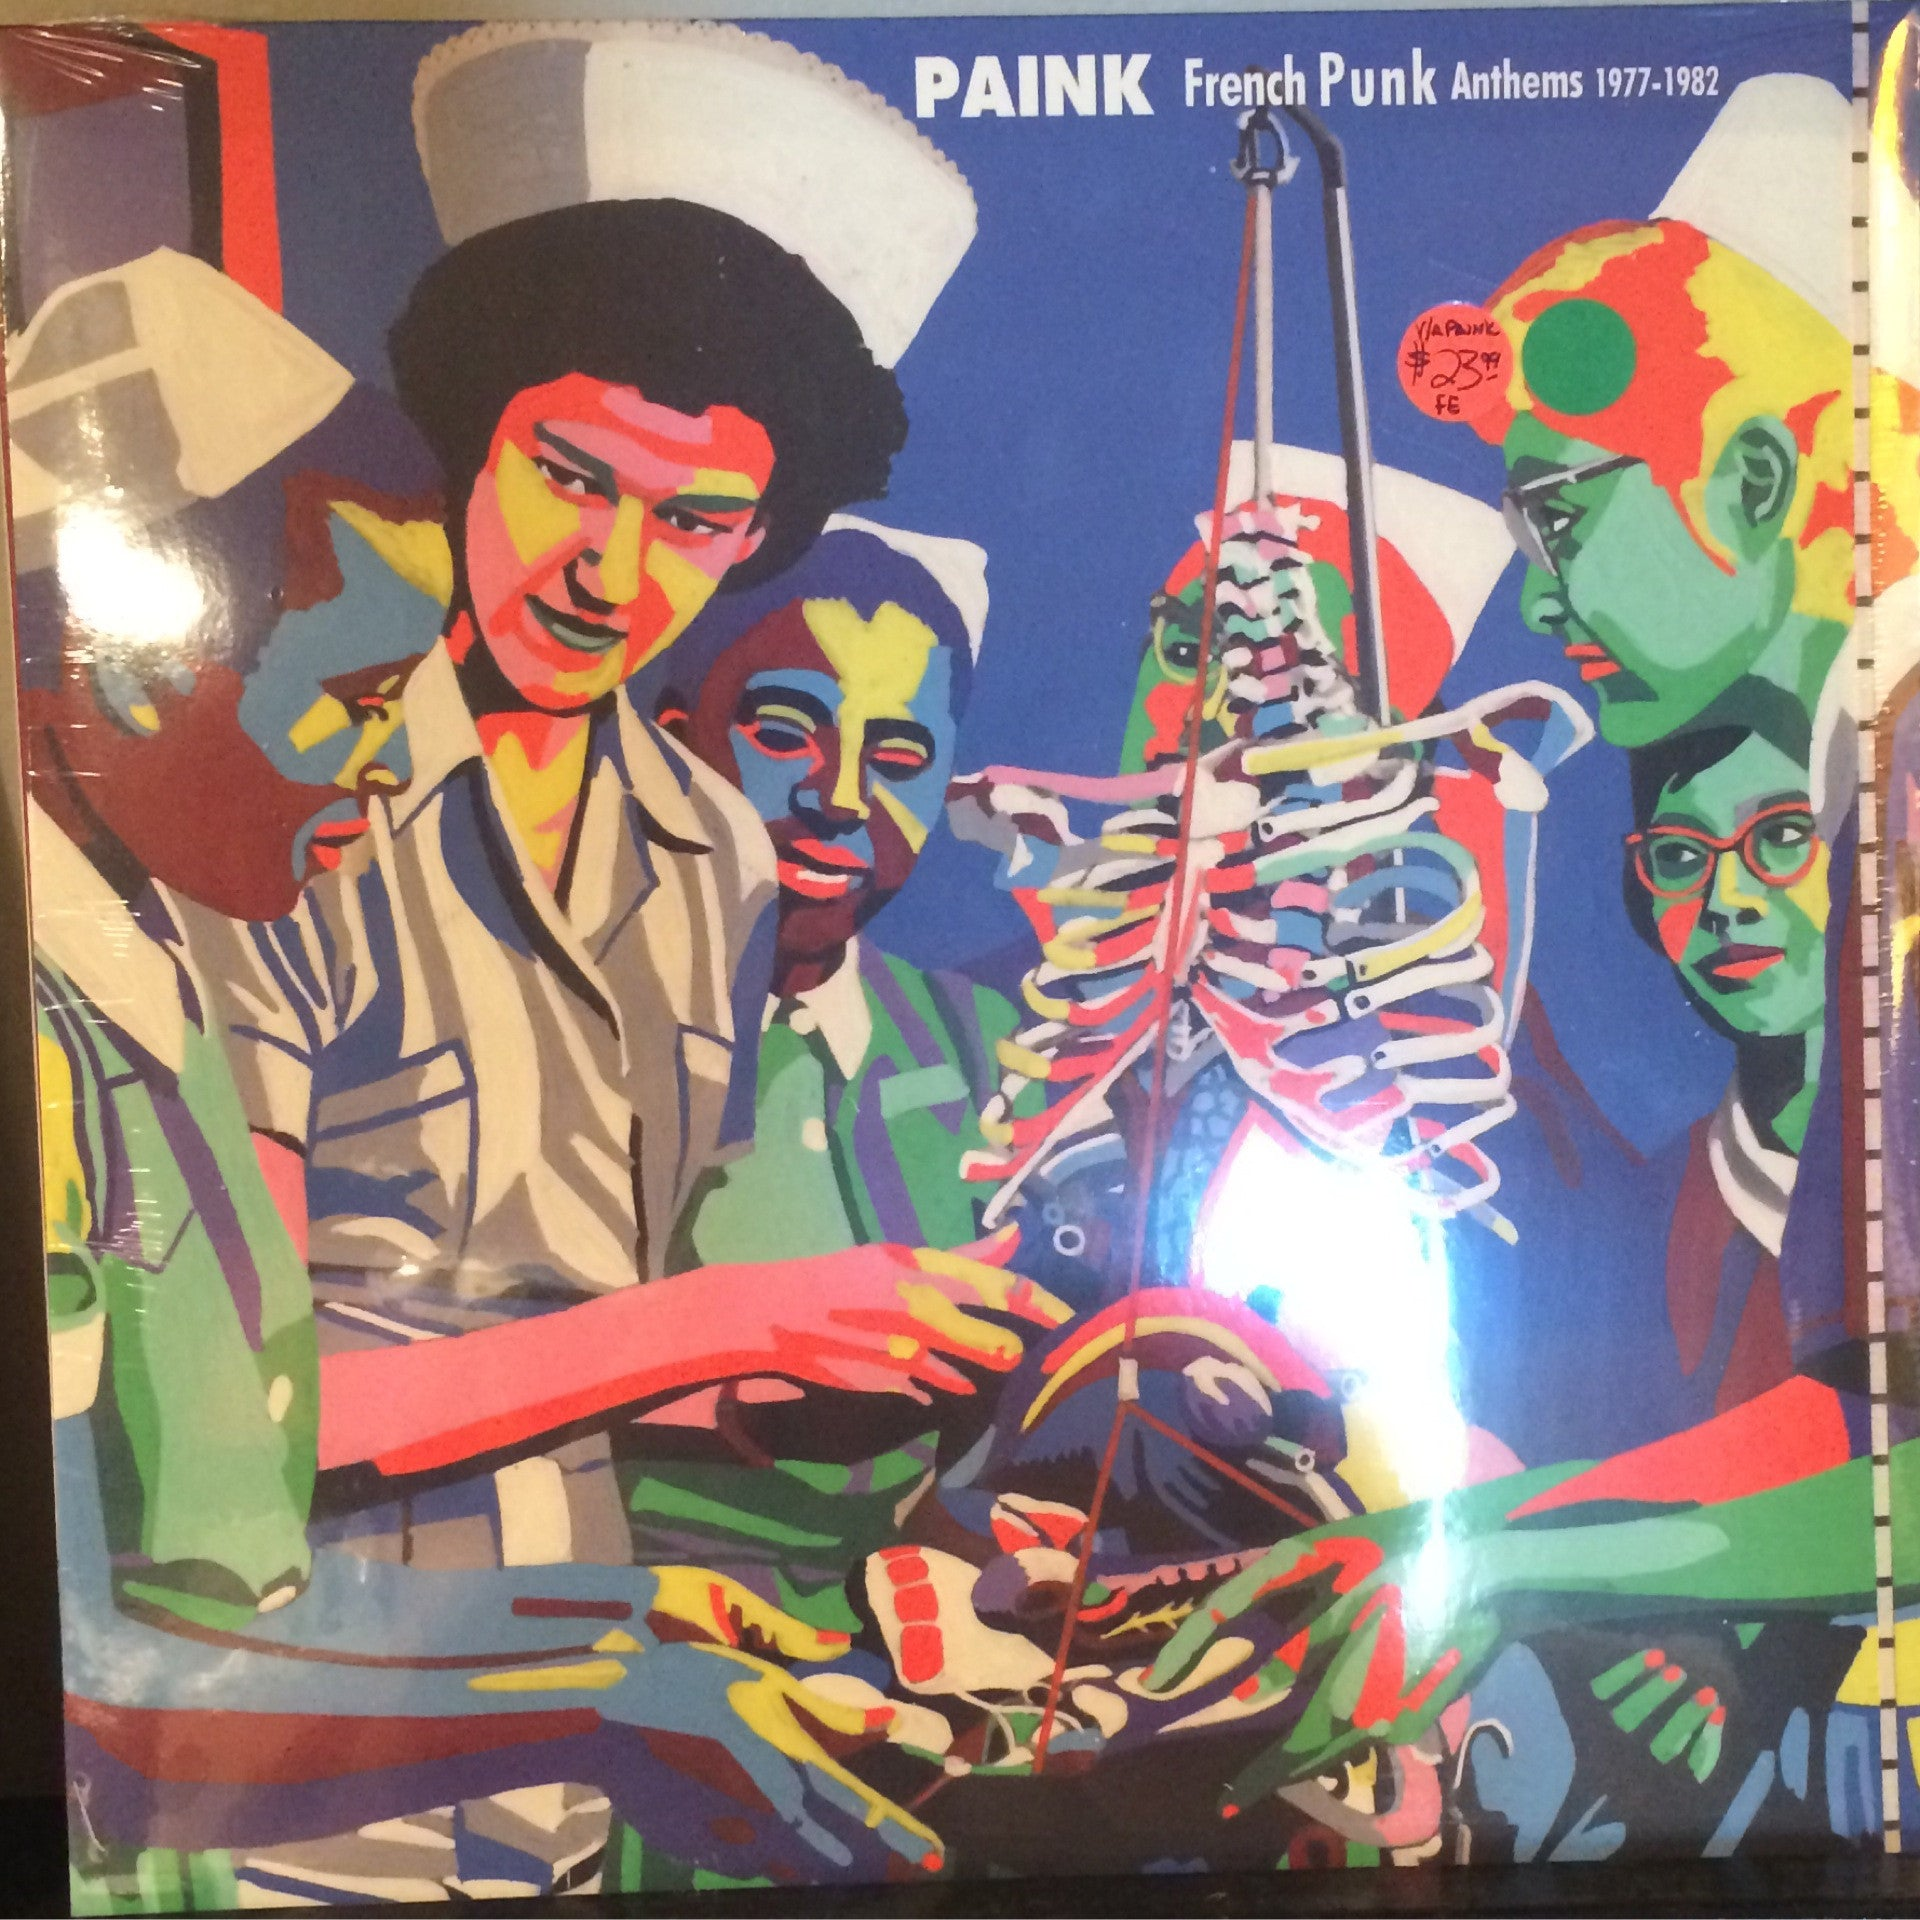 VA - Paink - French Punk Anthems 1977-1982 LP